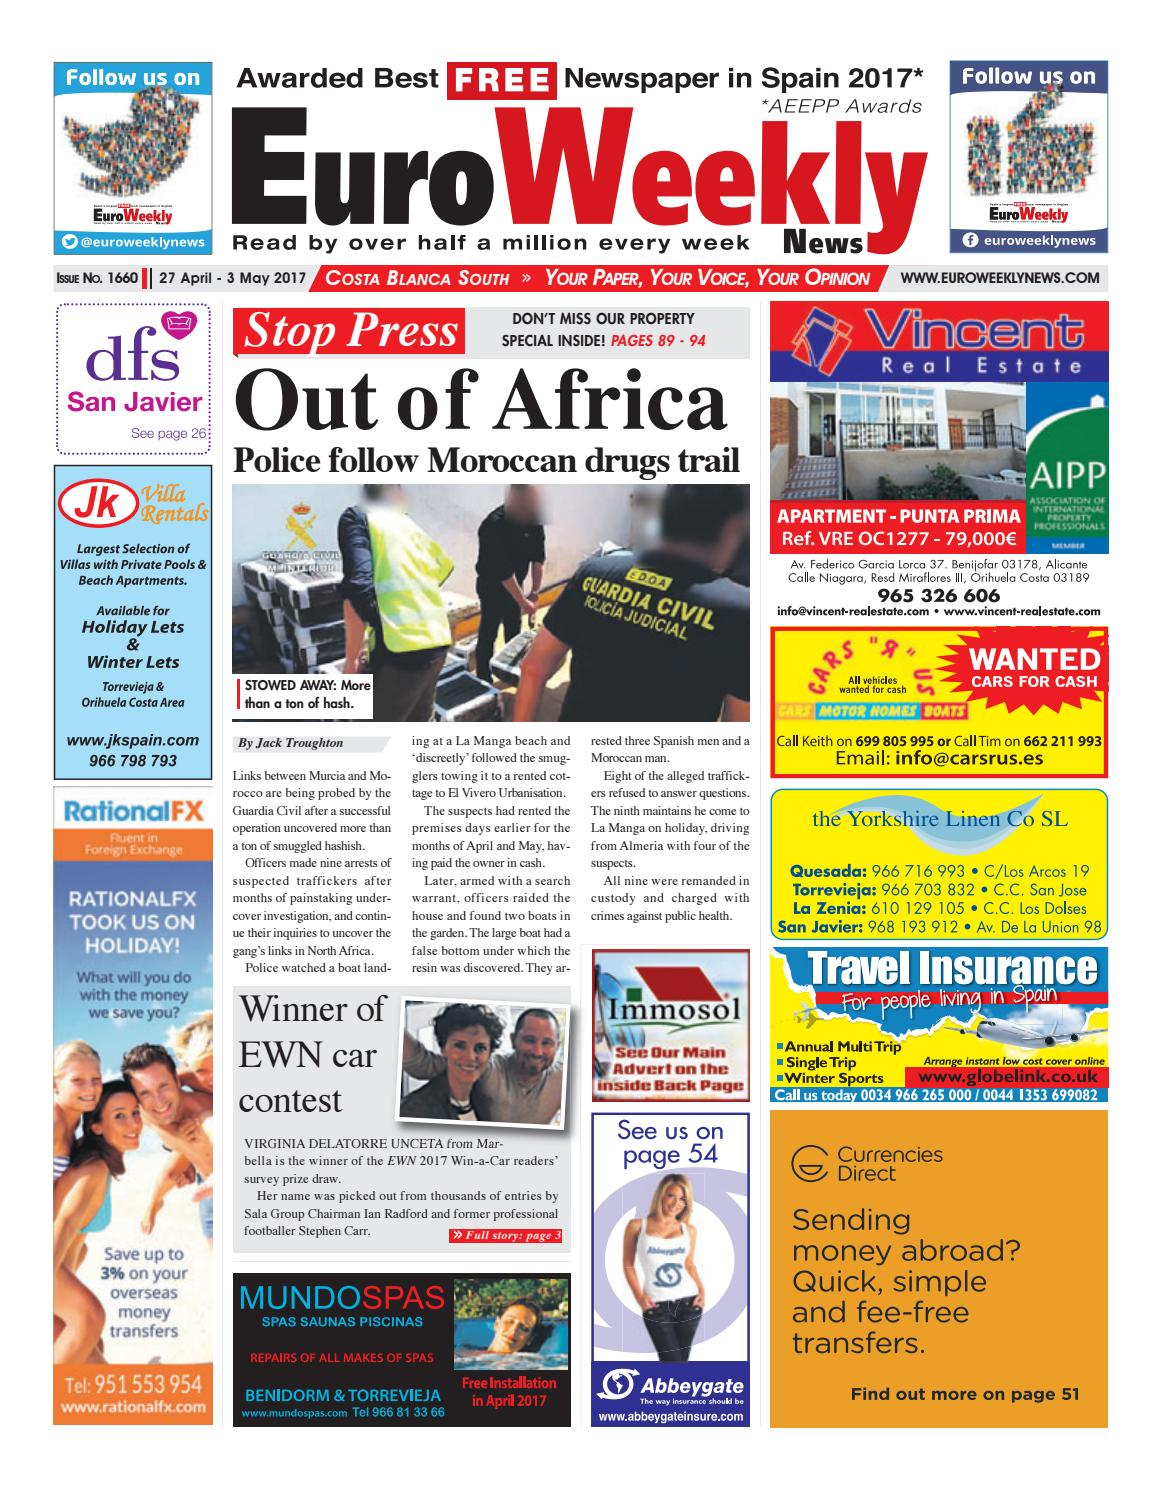 Hot desking lands ato in compensation case - Euro Weekly News Costa Blanca South 27 April 3 May 2017 Issue 1660 By Euro Weekly News Media S A Issuu